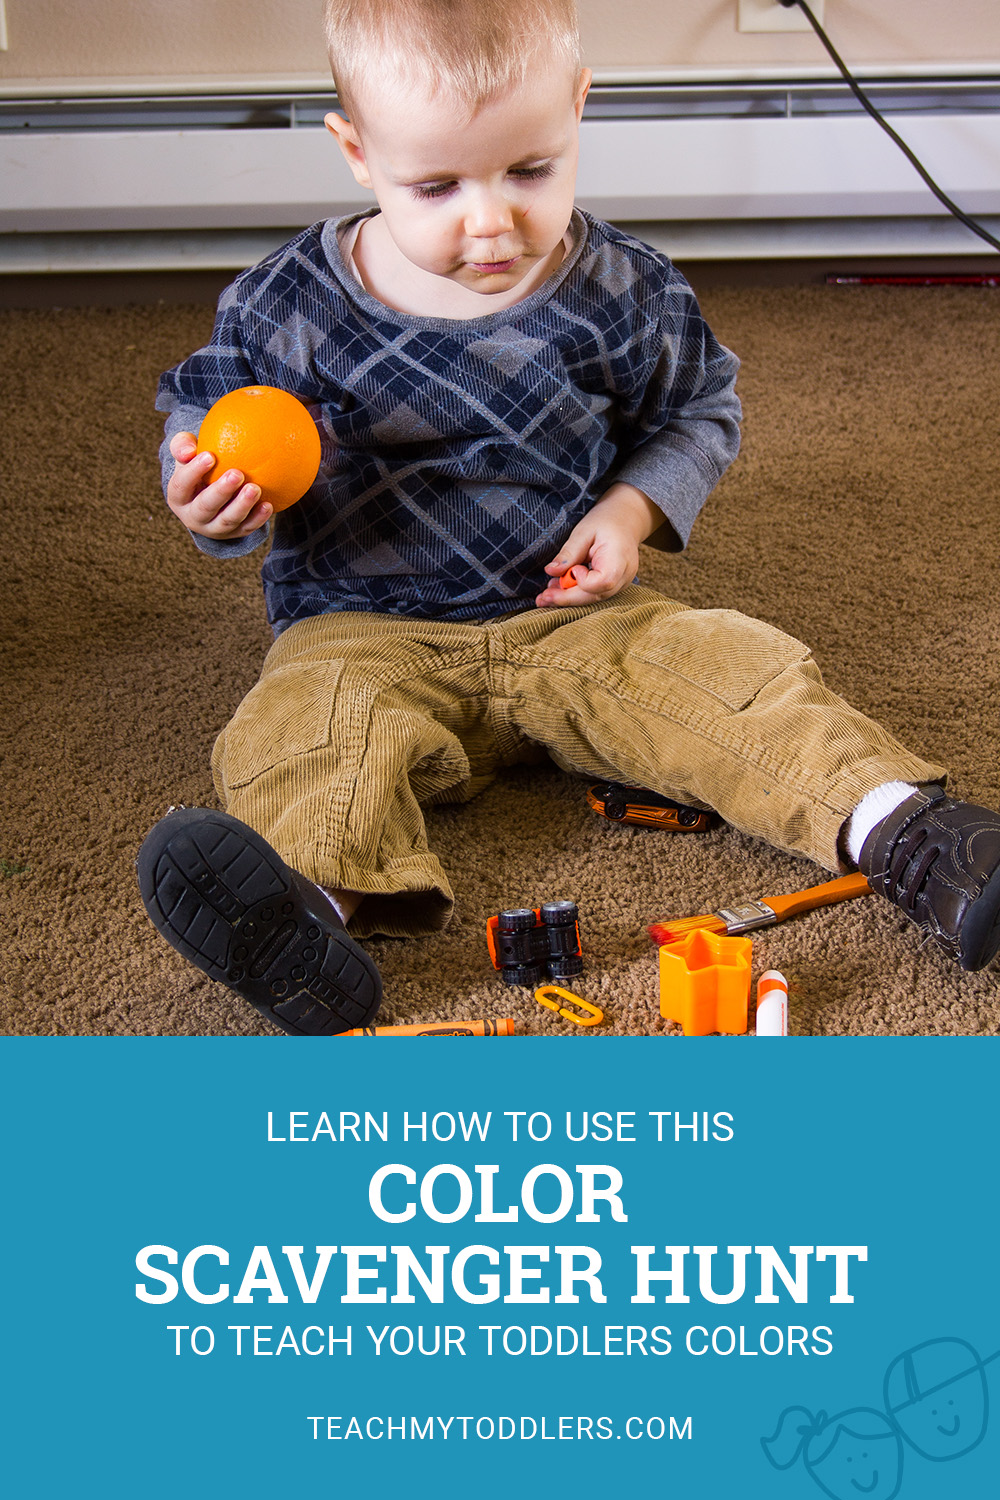 Learn how to use this color scavenger hunt to teach your toddlers colors